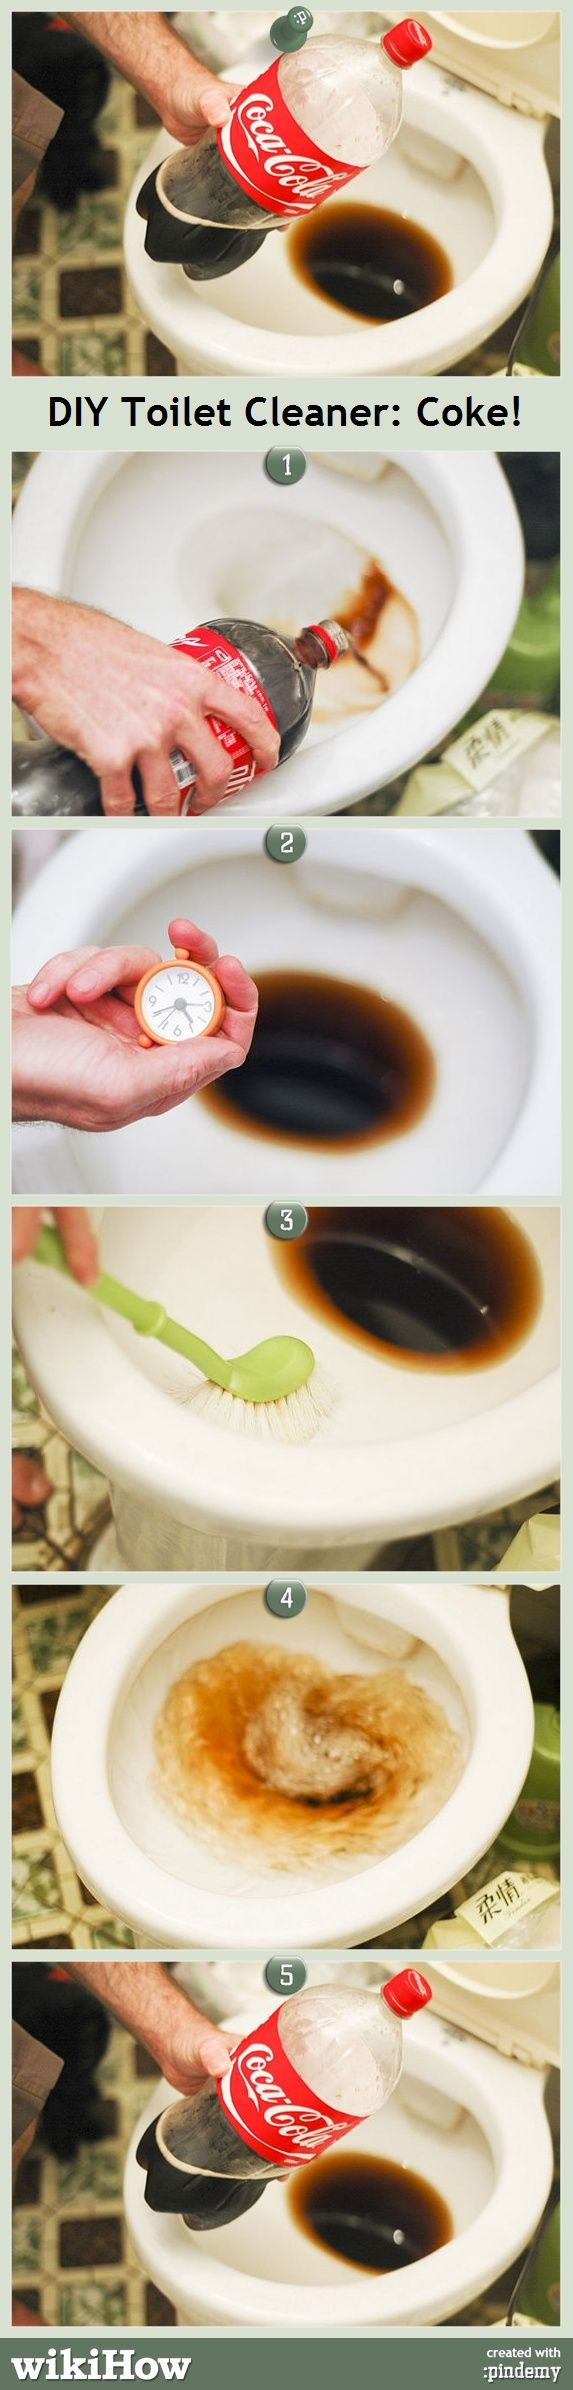 Clean A Toilet With Coke Diy Ideas Toilet Cleaning